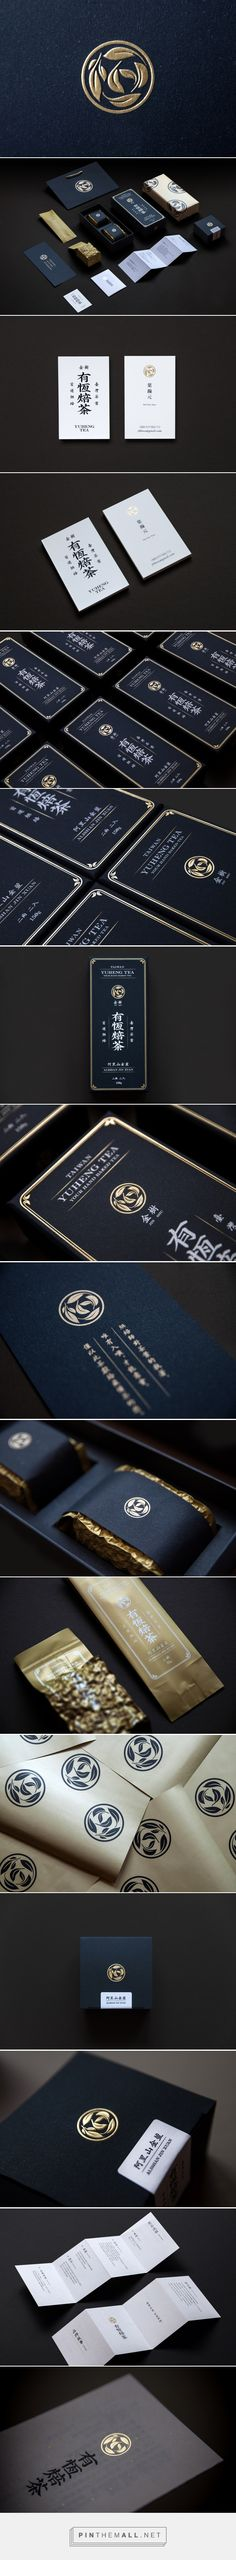 Yuheng Tea packaging design by OnionDesign (Taiwan)…